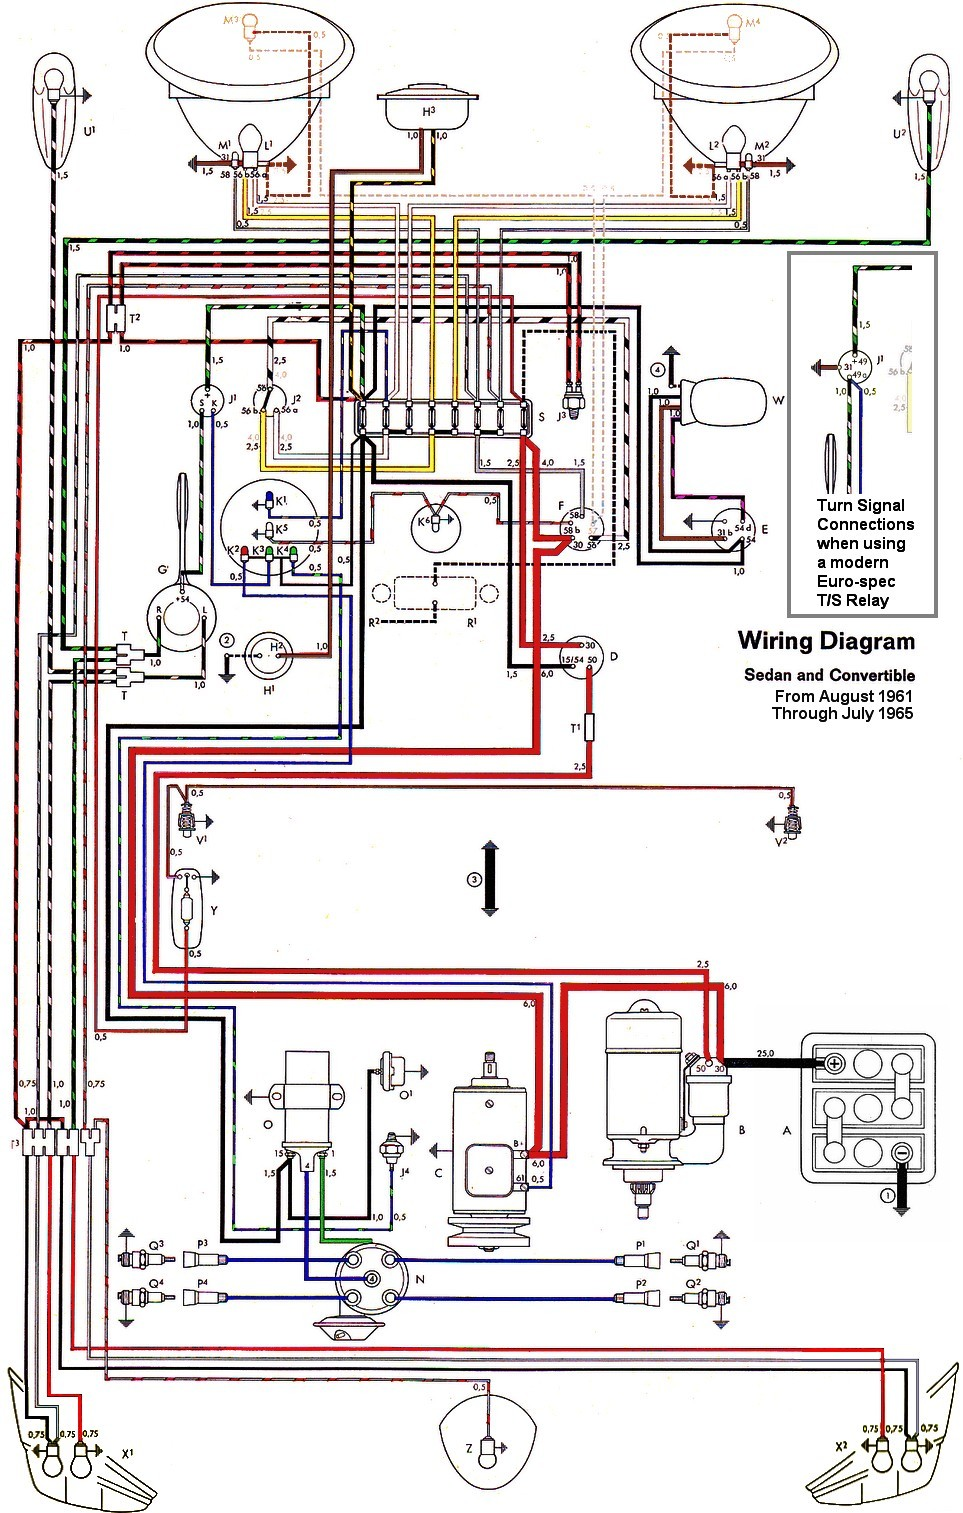 hight resolution of 67 vw bug turn signal switch wiring diagram electrical wiring diagrams vw beetle turn signal wiring diagram on 67 vw turn signal wiring